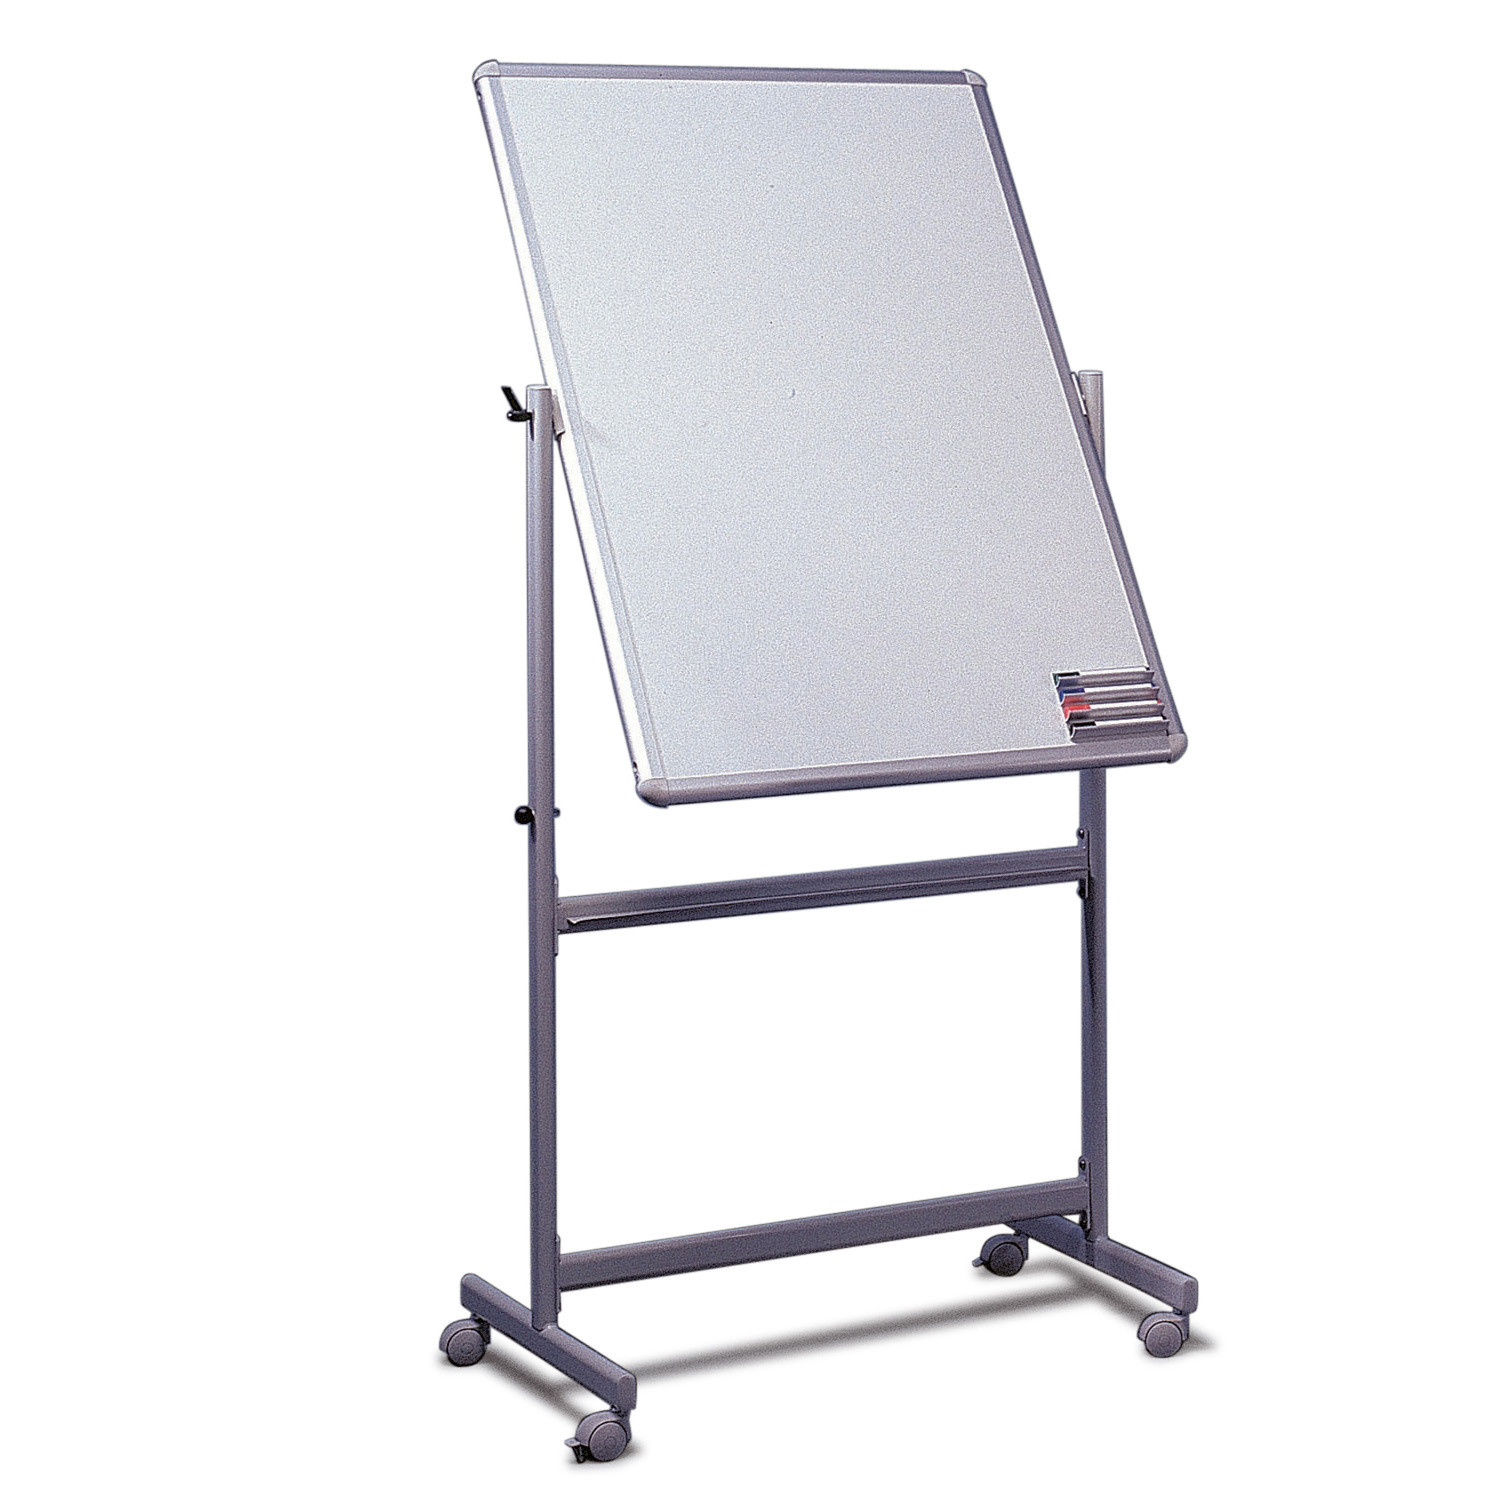 Reversible whiteboard